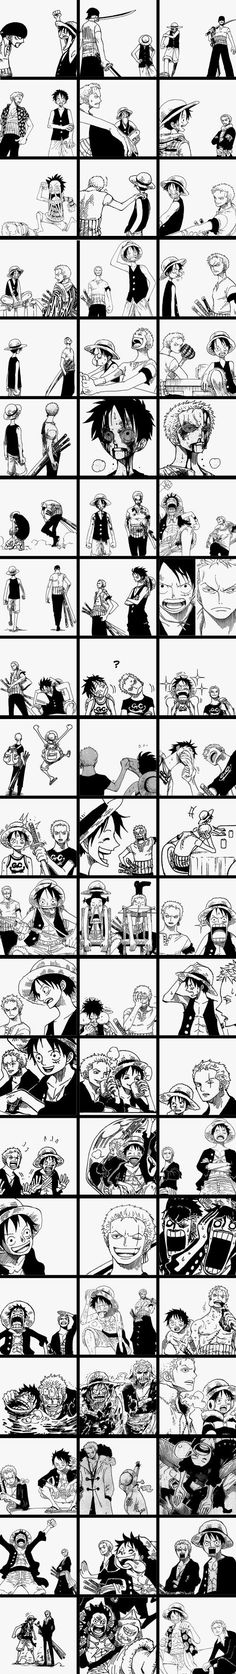 Zoro and Luffy, the original two :D. If the crew was to every break up. Zoro would stay by Luffy's side One Piece Anime, Anime One, Anime Stuff, One Piece World, One Piece 1, Manga Anime, Tsurezure Children, One Piece Drawing, One Piece Funny